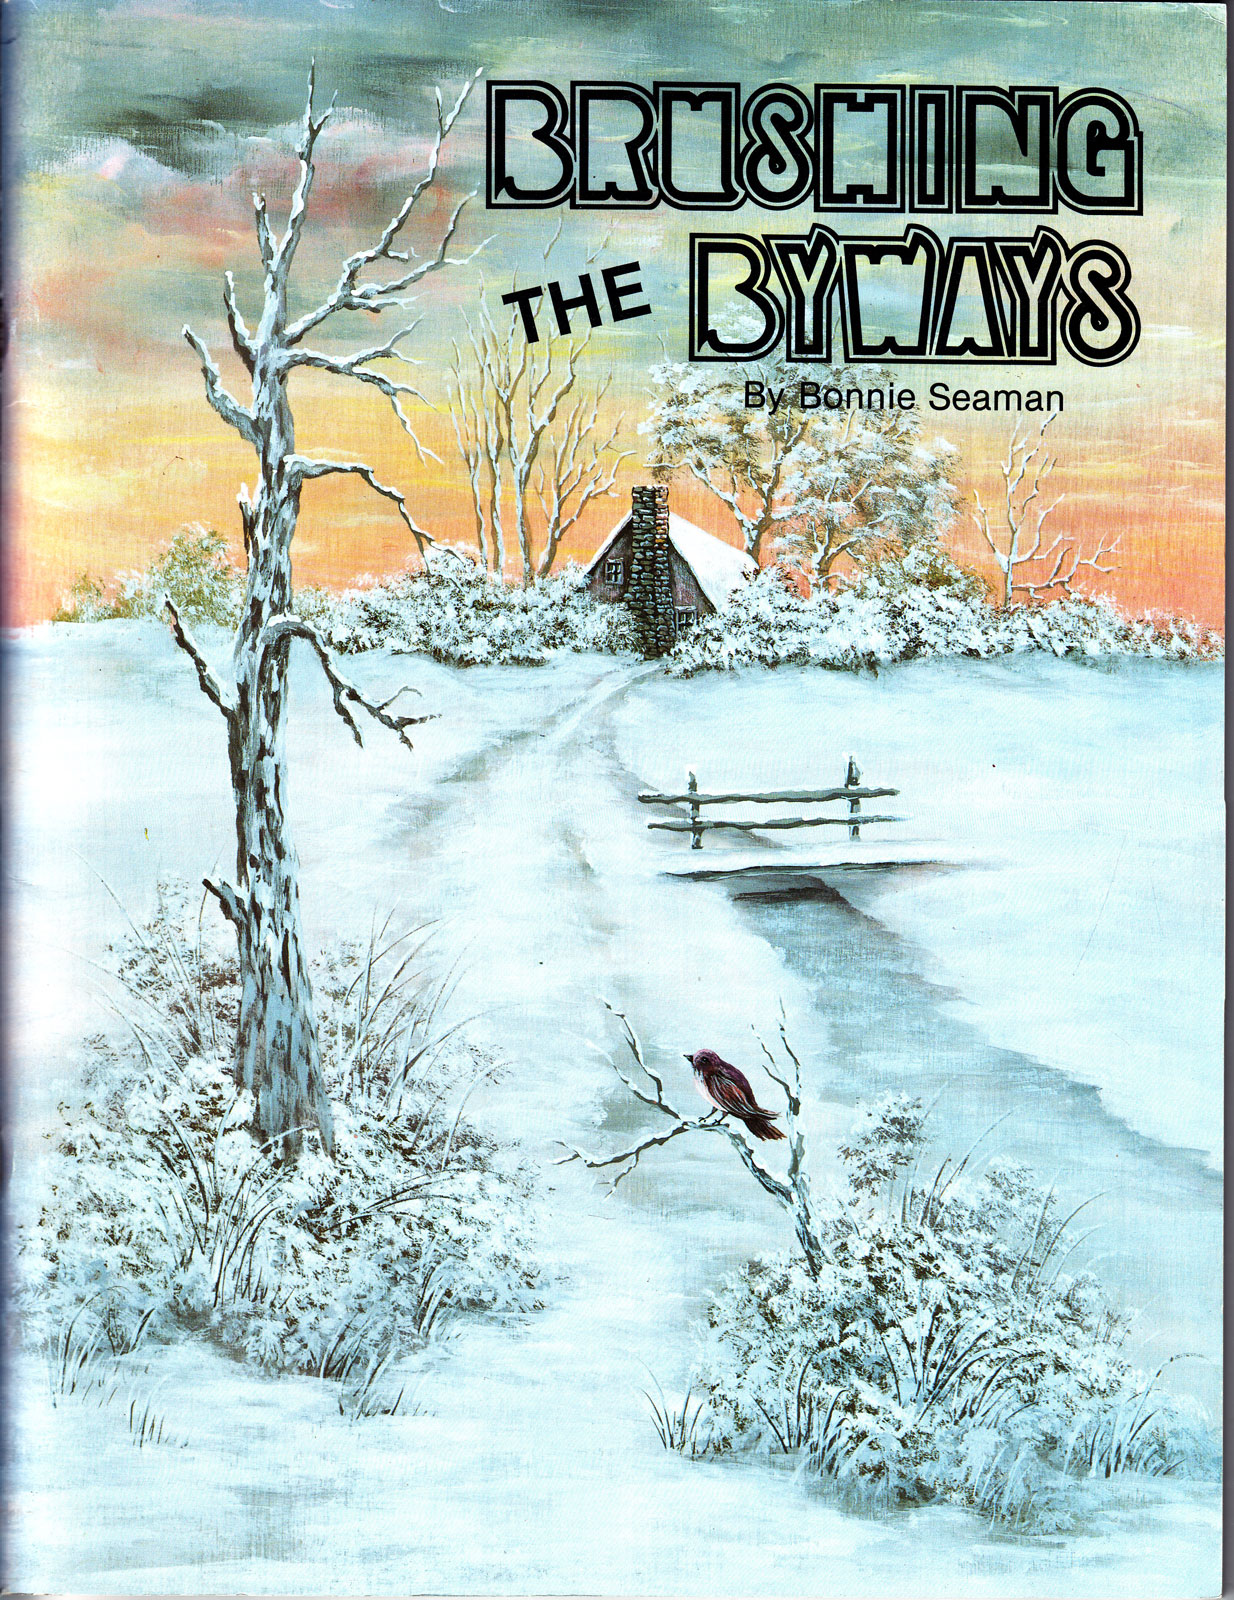 Brushing the byways - Bonnie Seaman